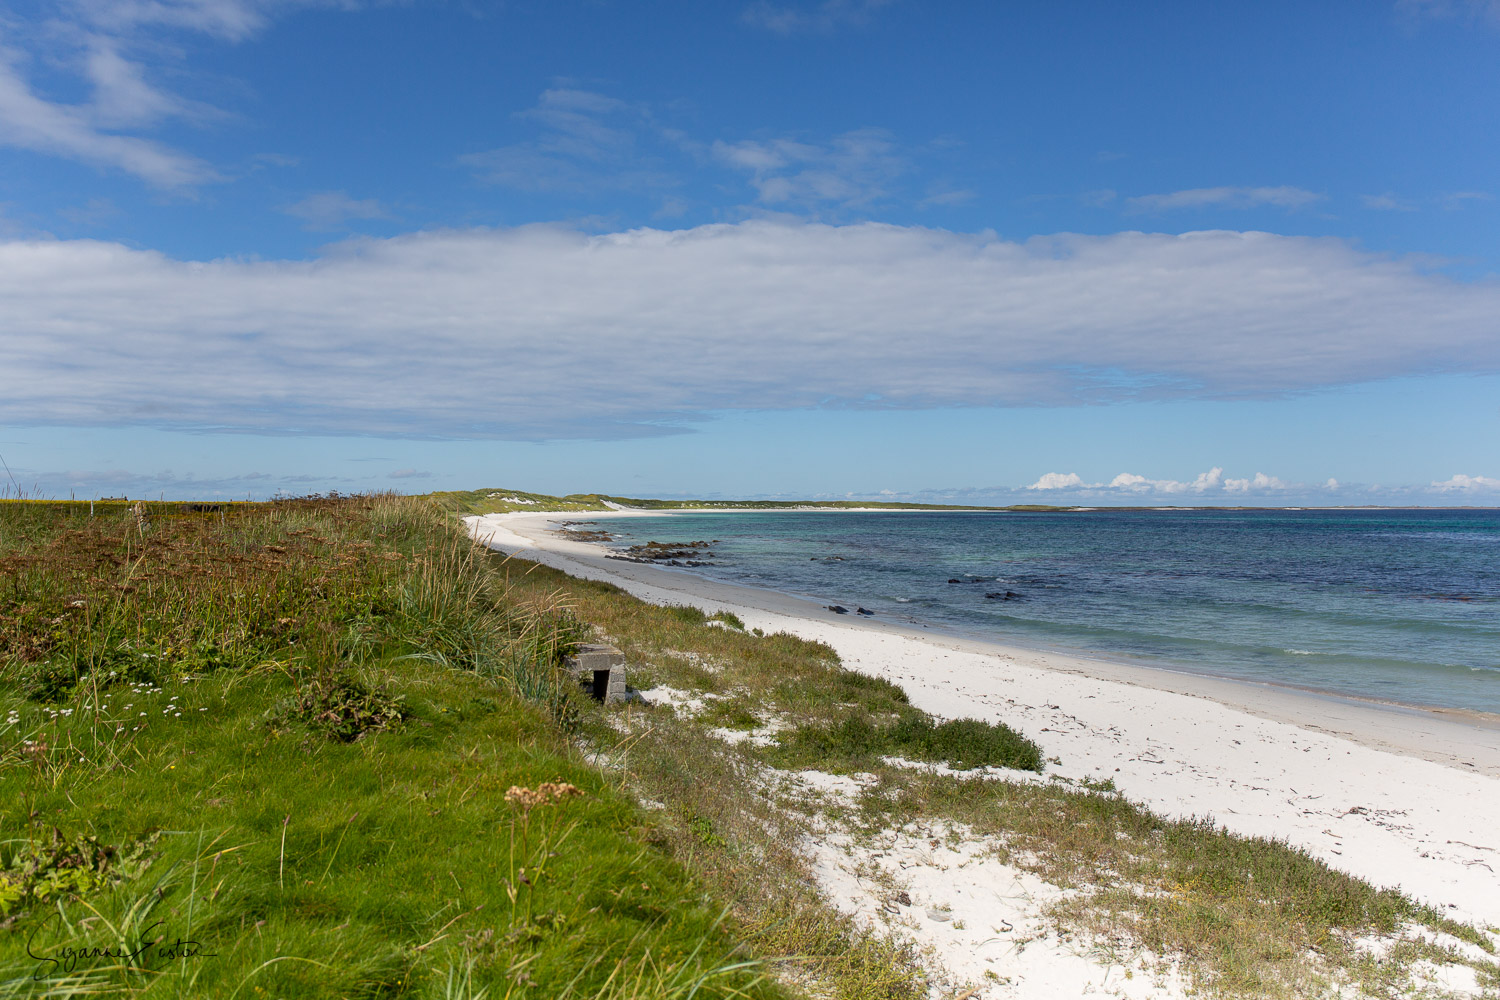 Scuthvie Bay on Sanday has gentle sand dunes